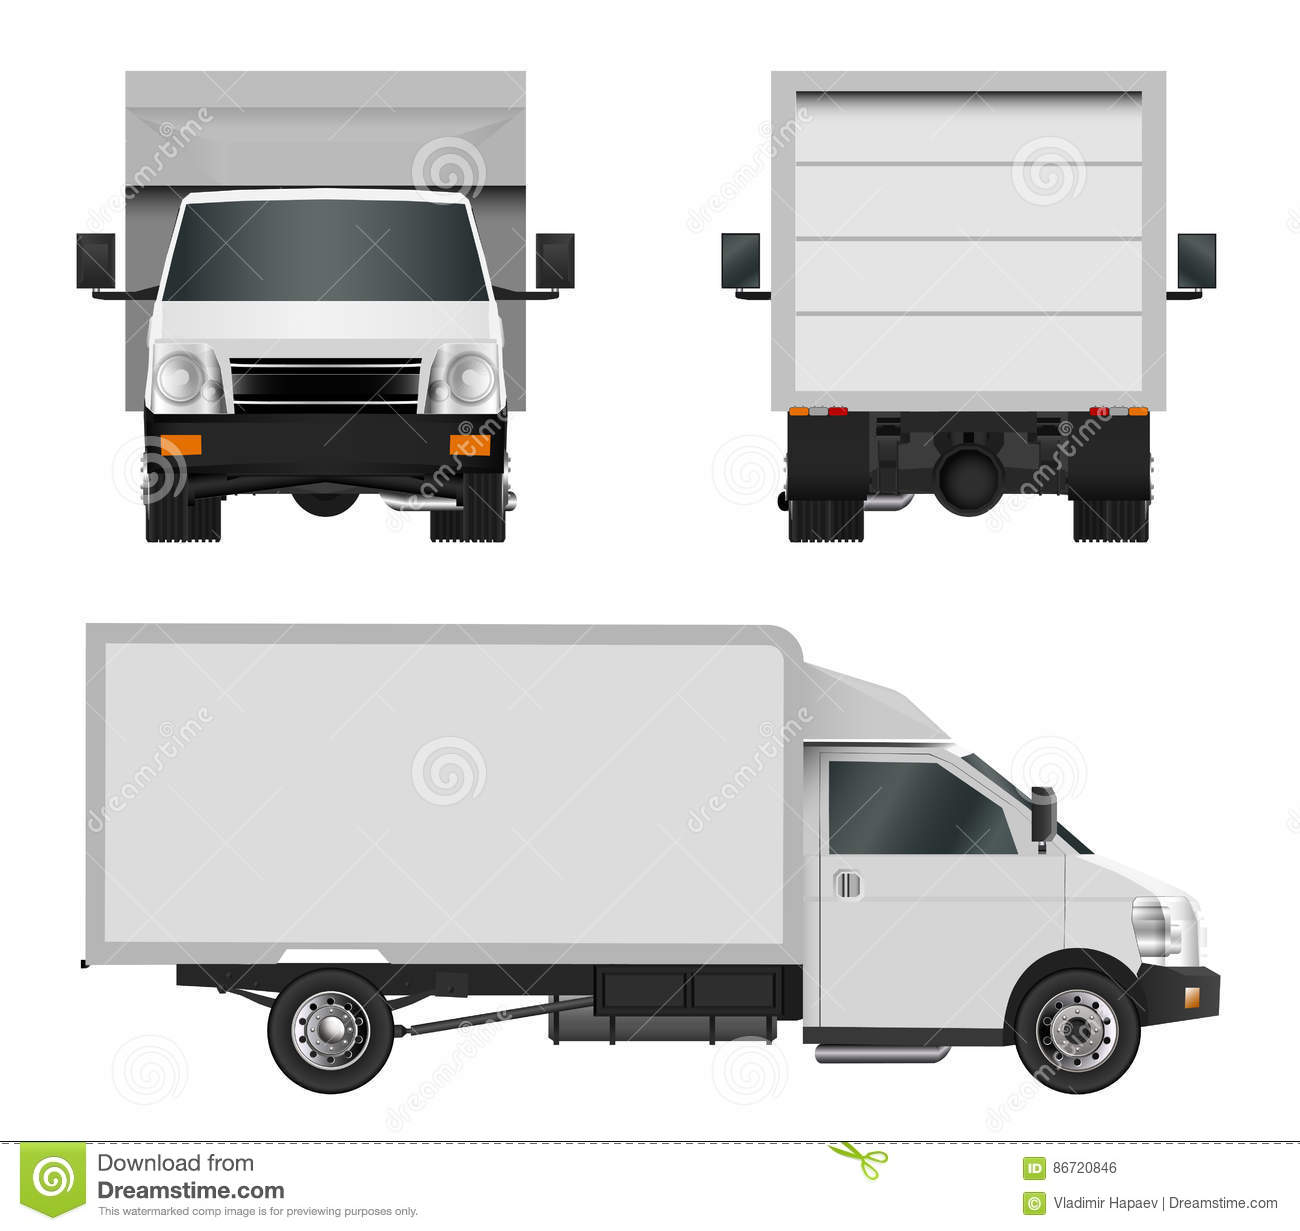 white truck template cargo van vector illustration eps 10 isolated on white background city. Black Bedroom Furniture Sets. Home Design Ideas